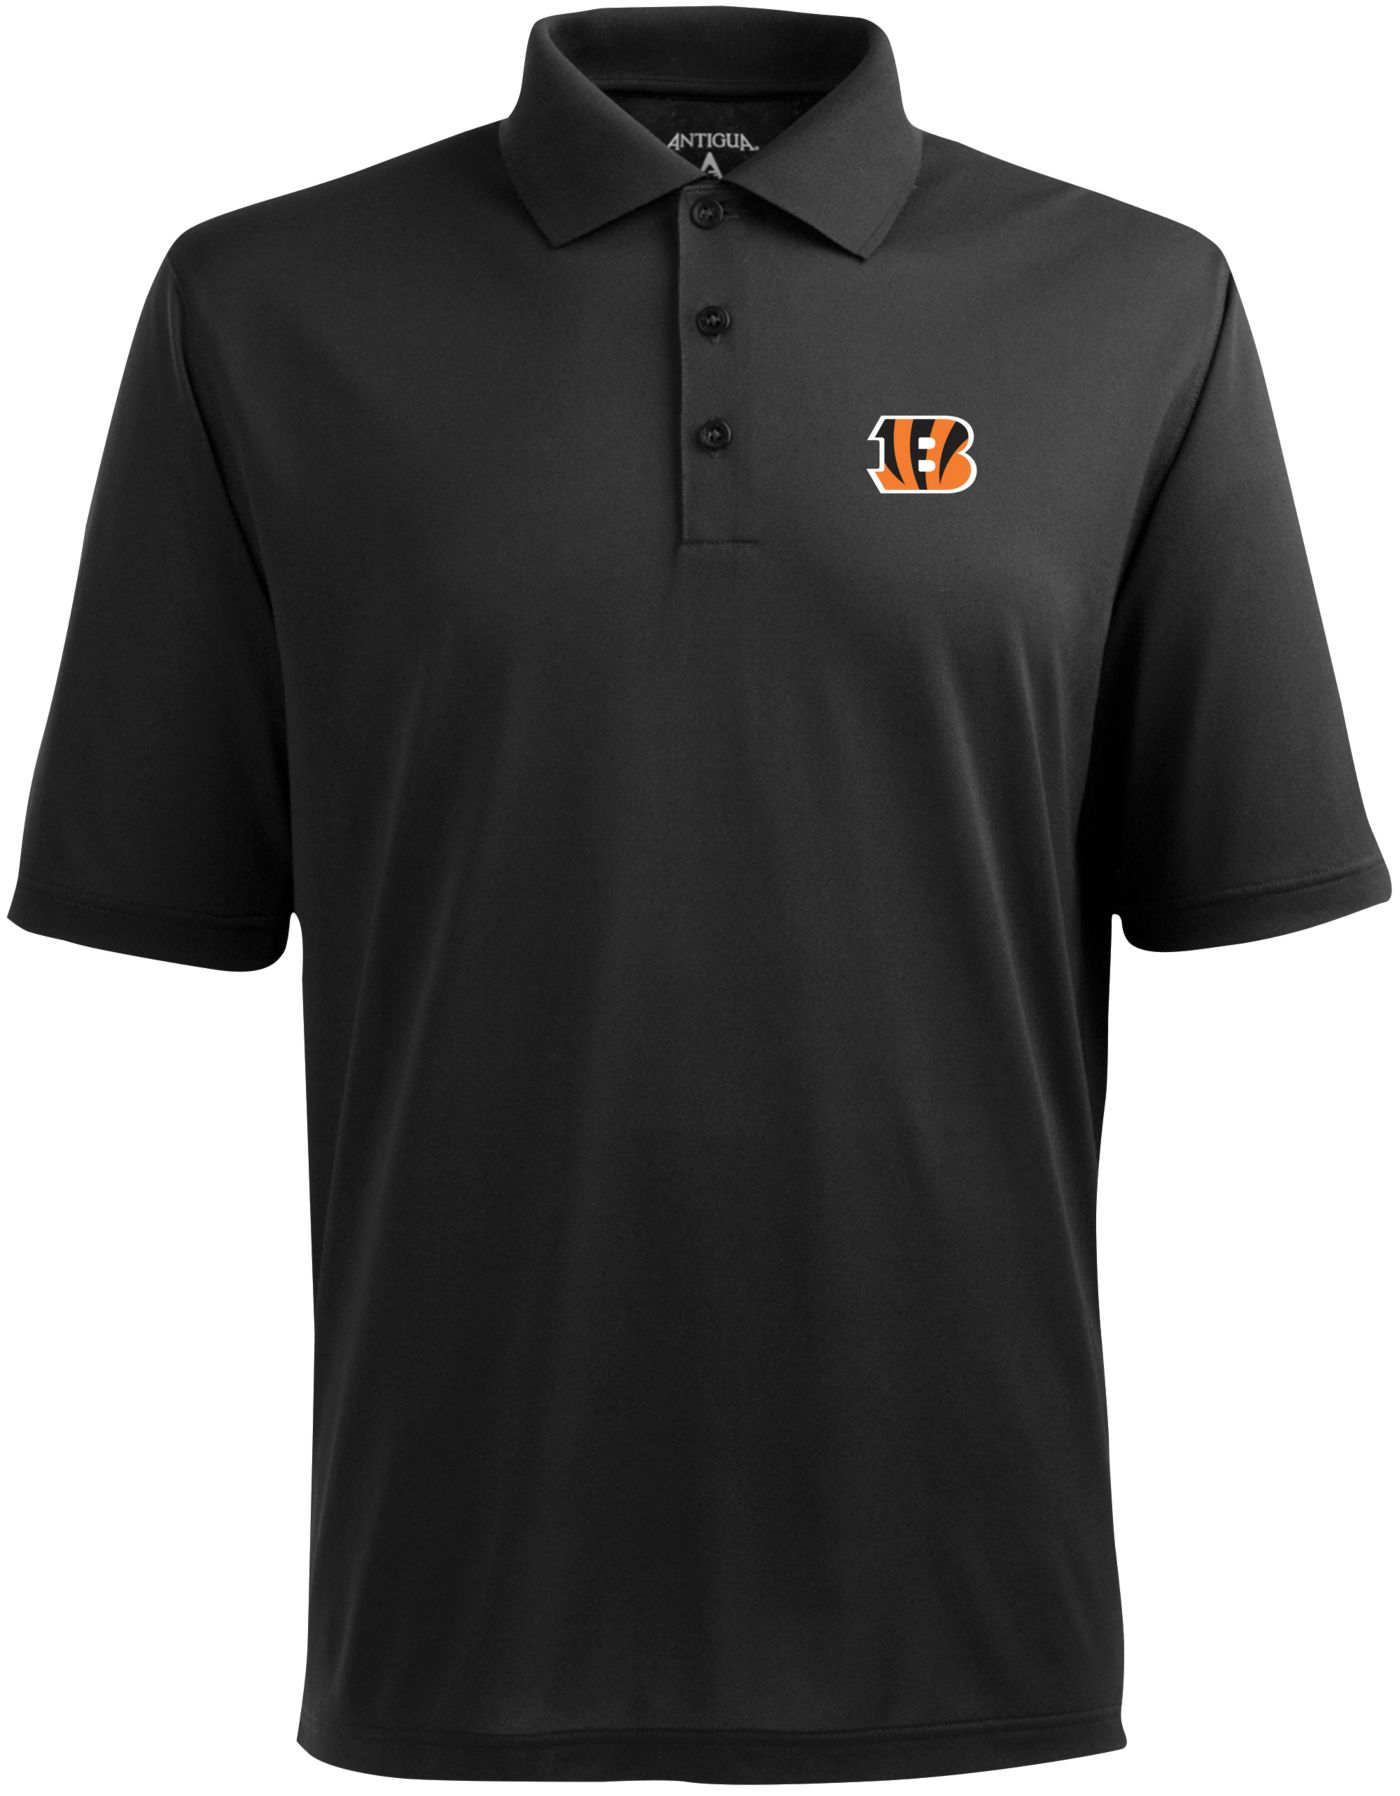 Antigua Men's Cincinnati Bengals Pique Xtra-Lite Black Polo